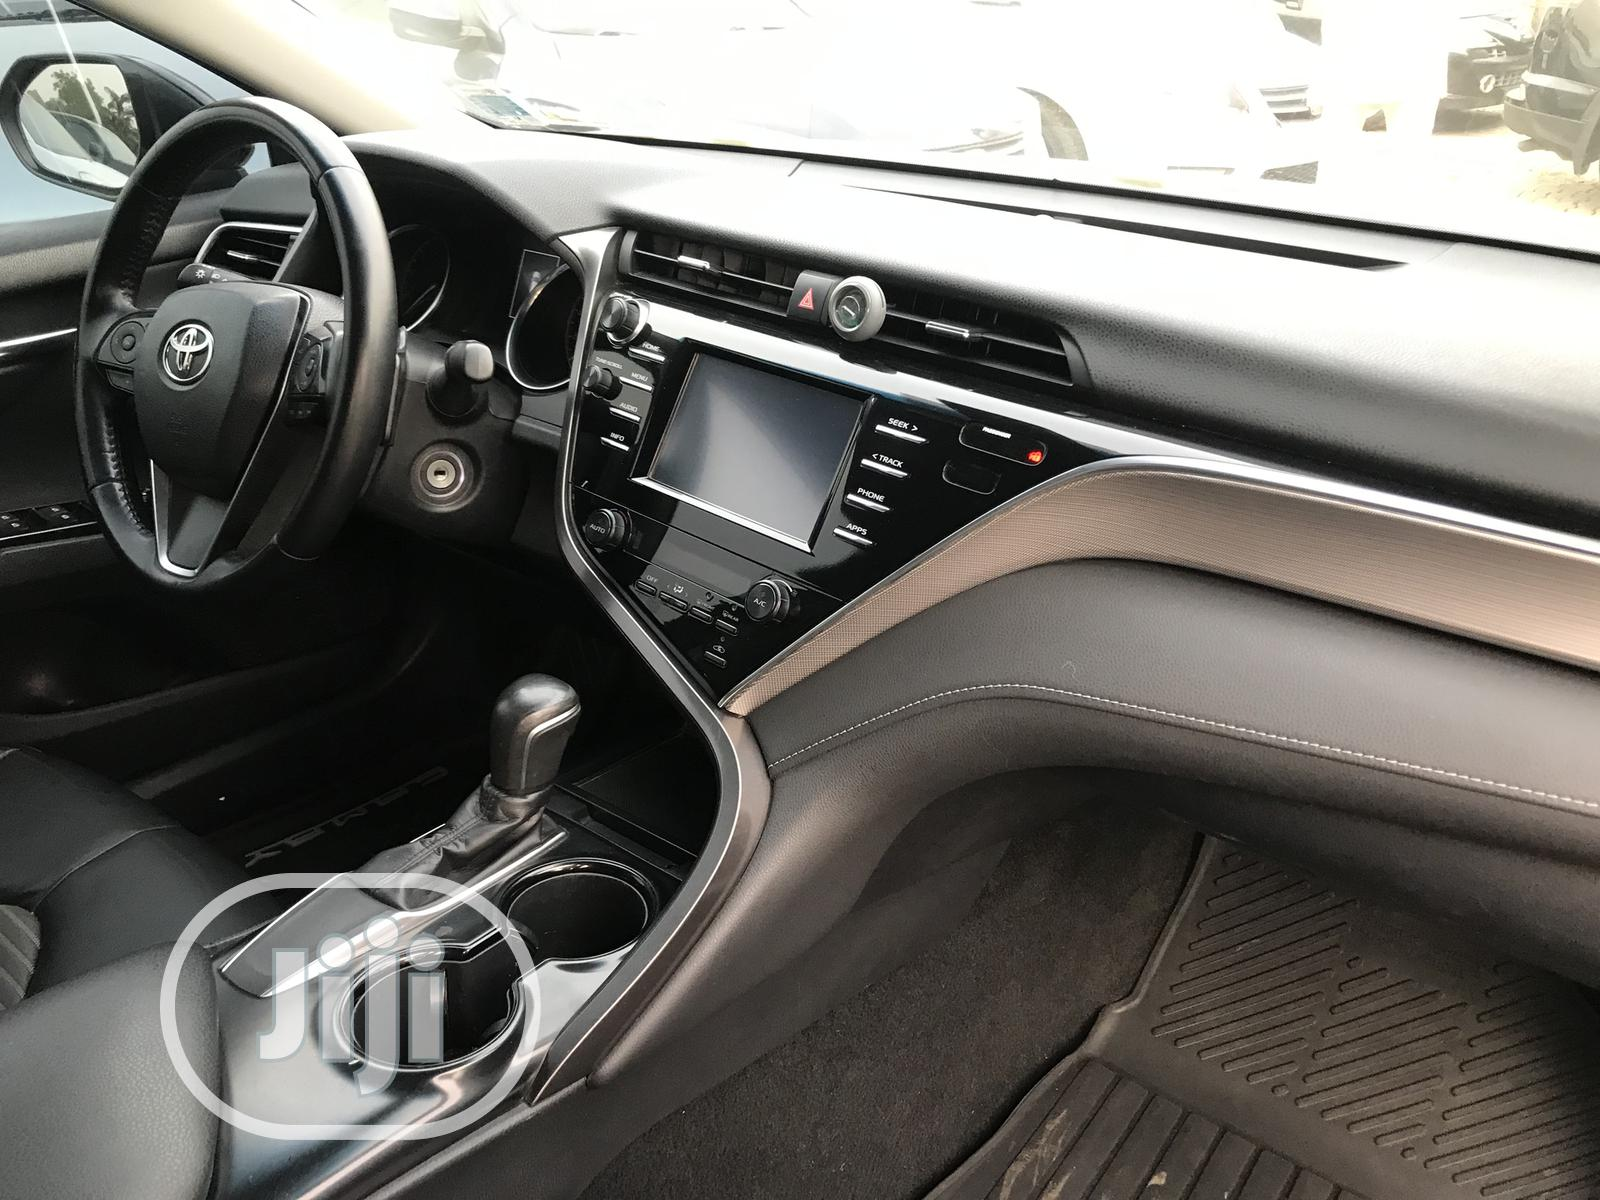 Archive: Toyota Camry 2018 SE FWD (2.5L 4cyl 8AM) Black